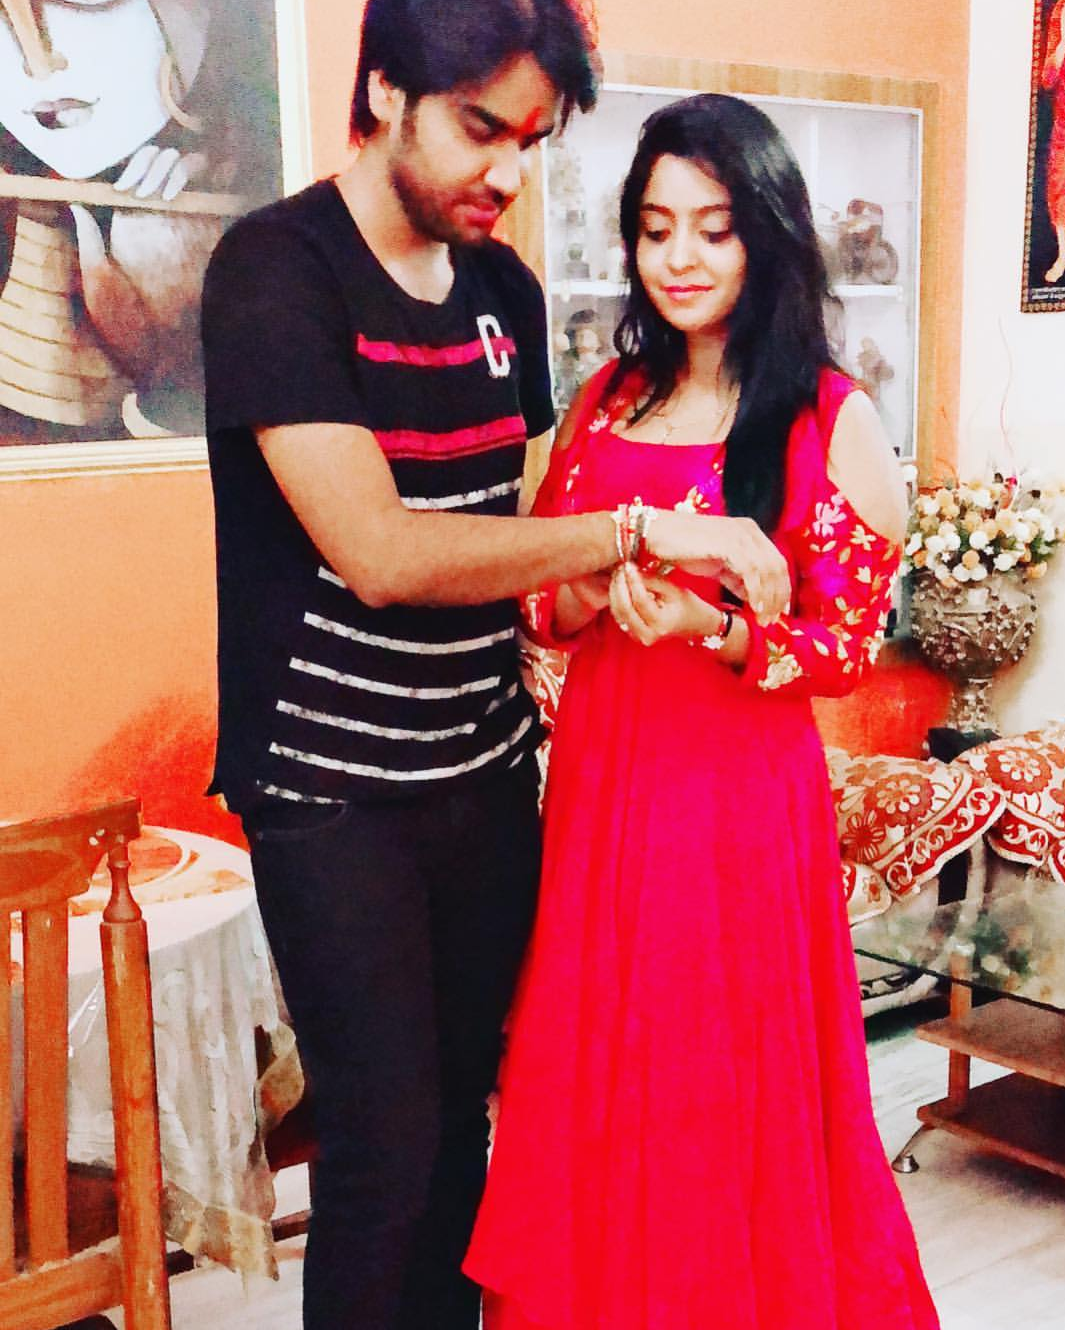 See how Shubhi Sharma celebrated the Raksha Bandhan